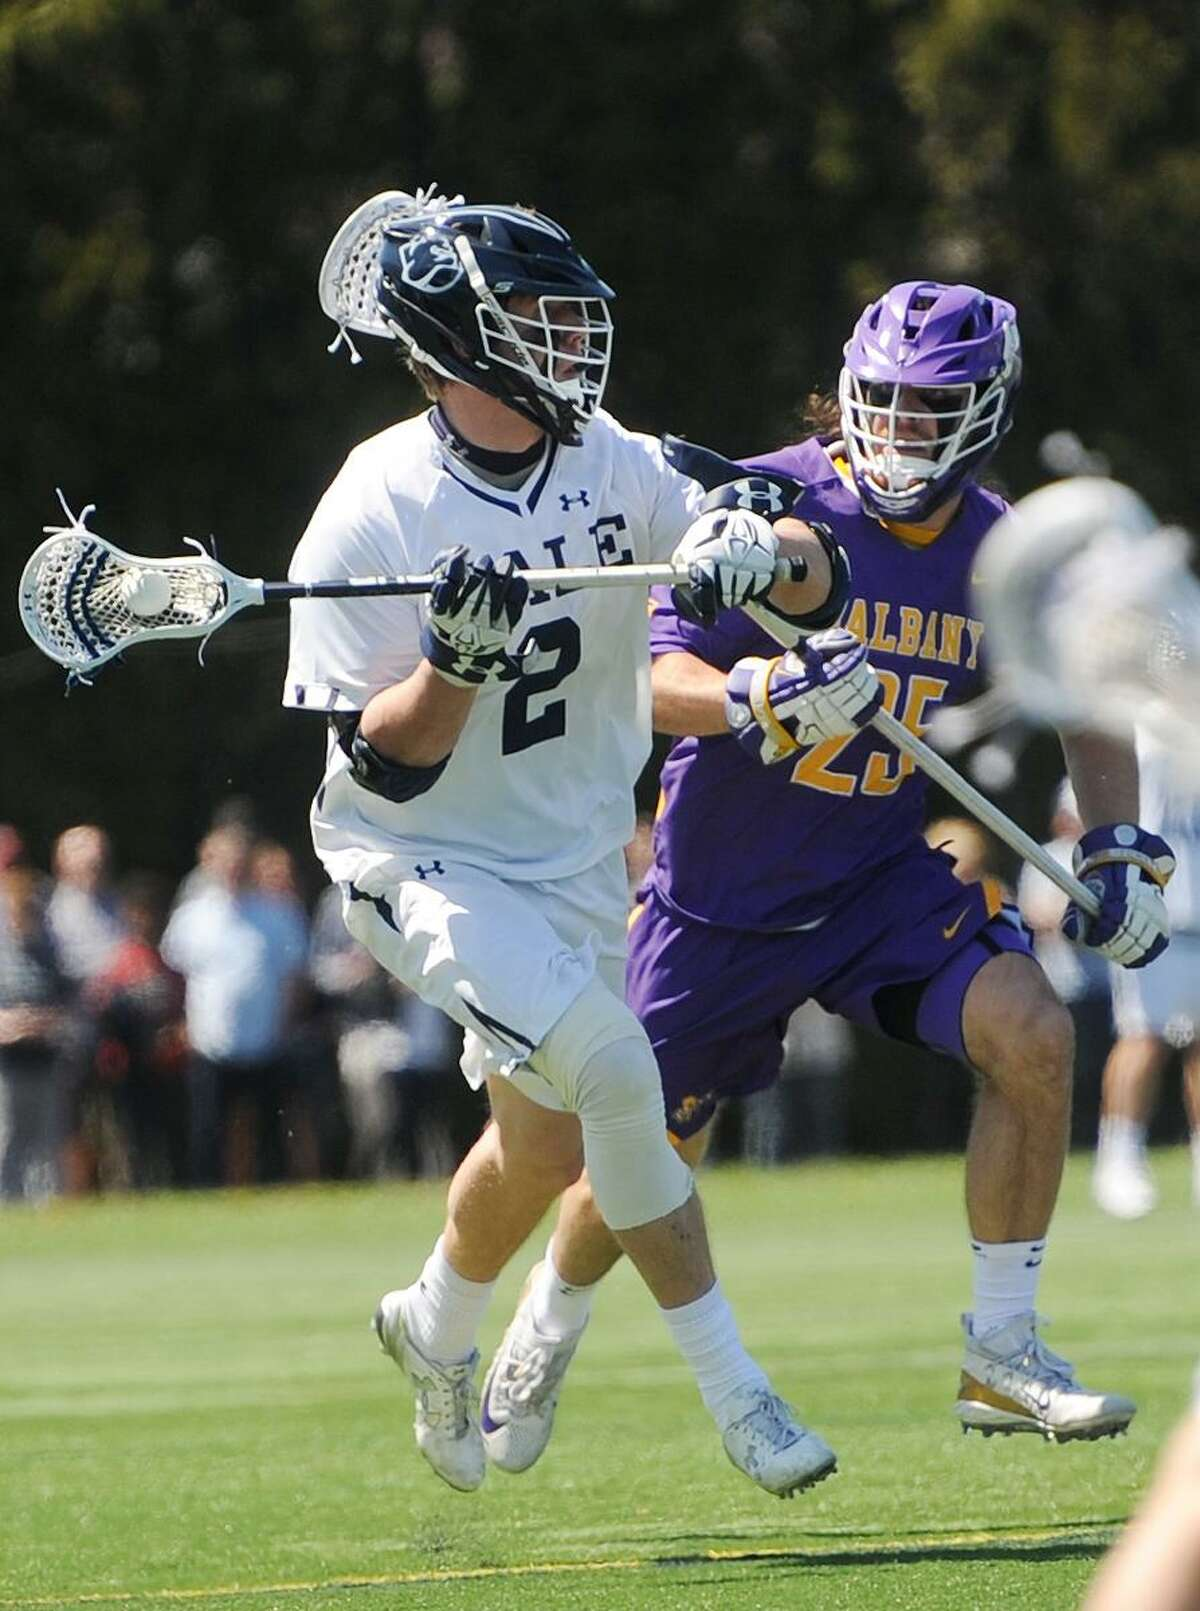 Ben Reeves is a senior attack for the Yale lacrosse team.